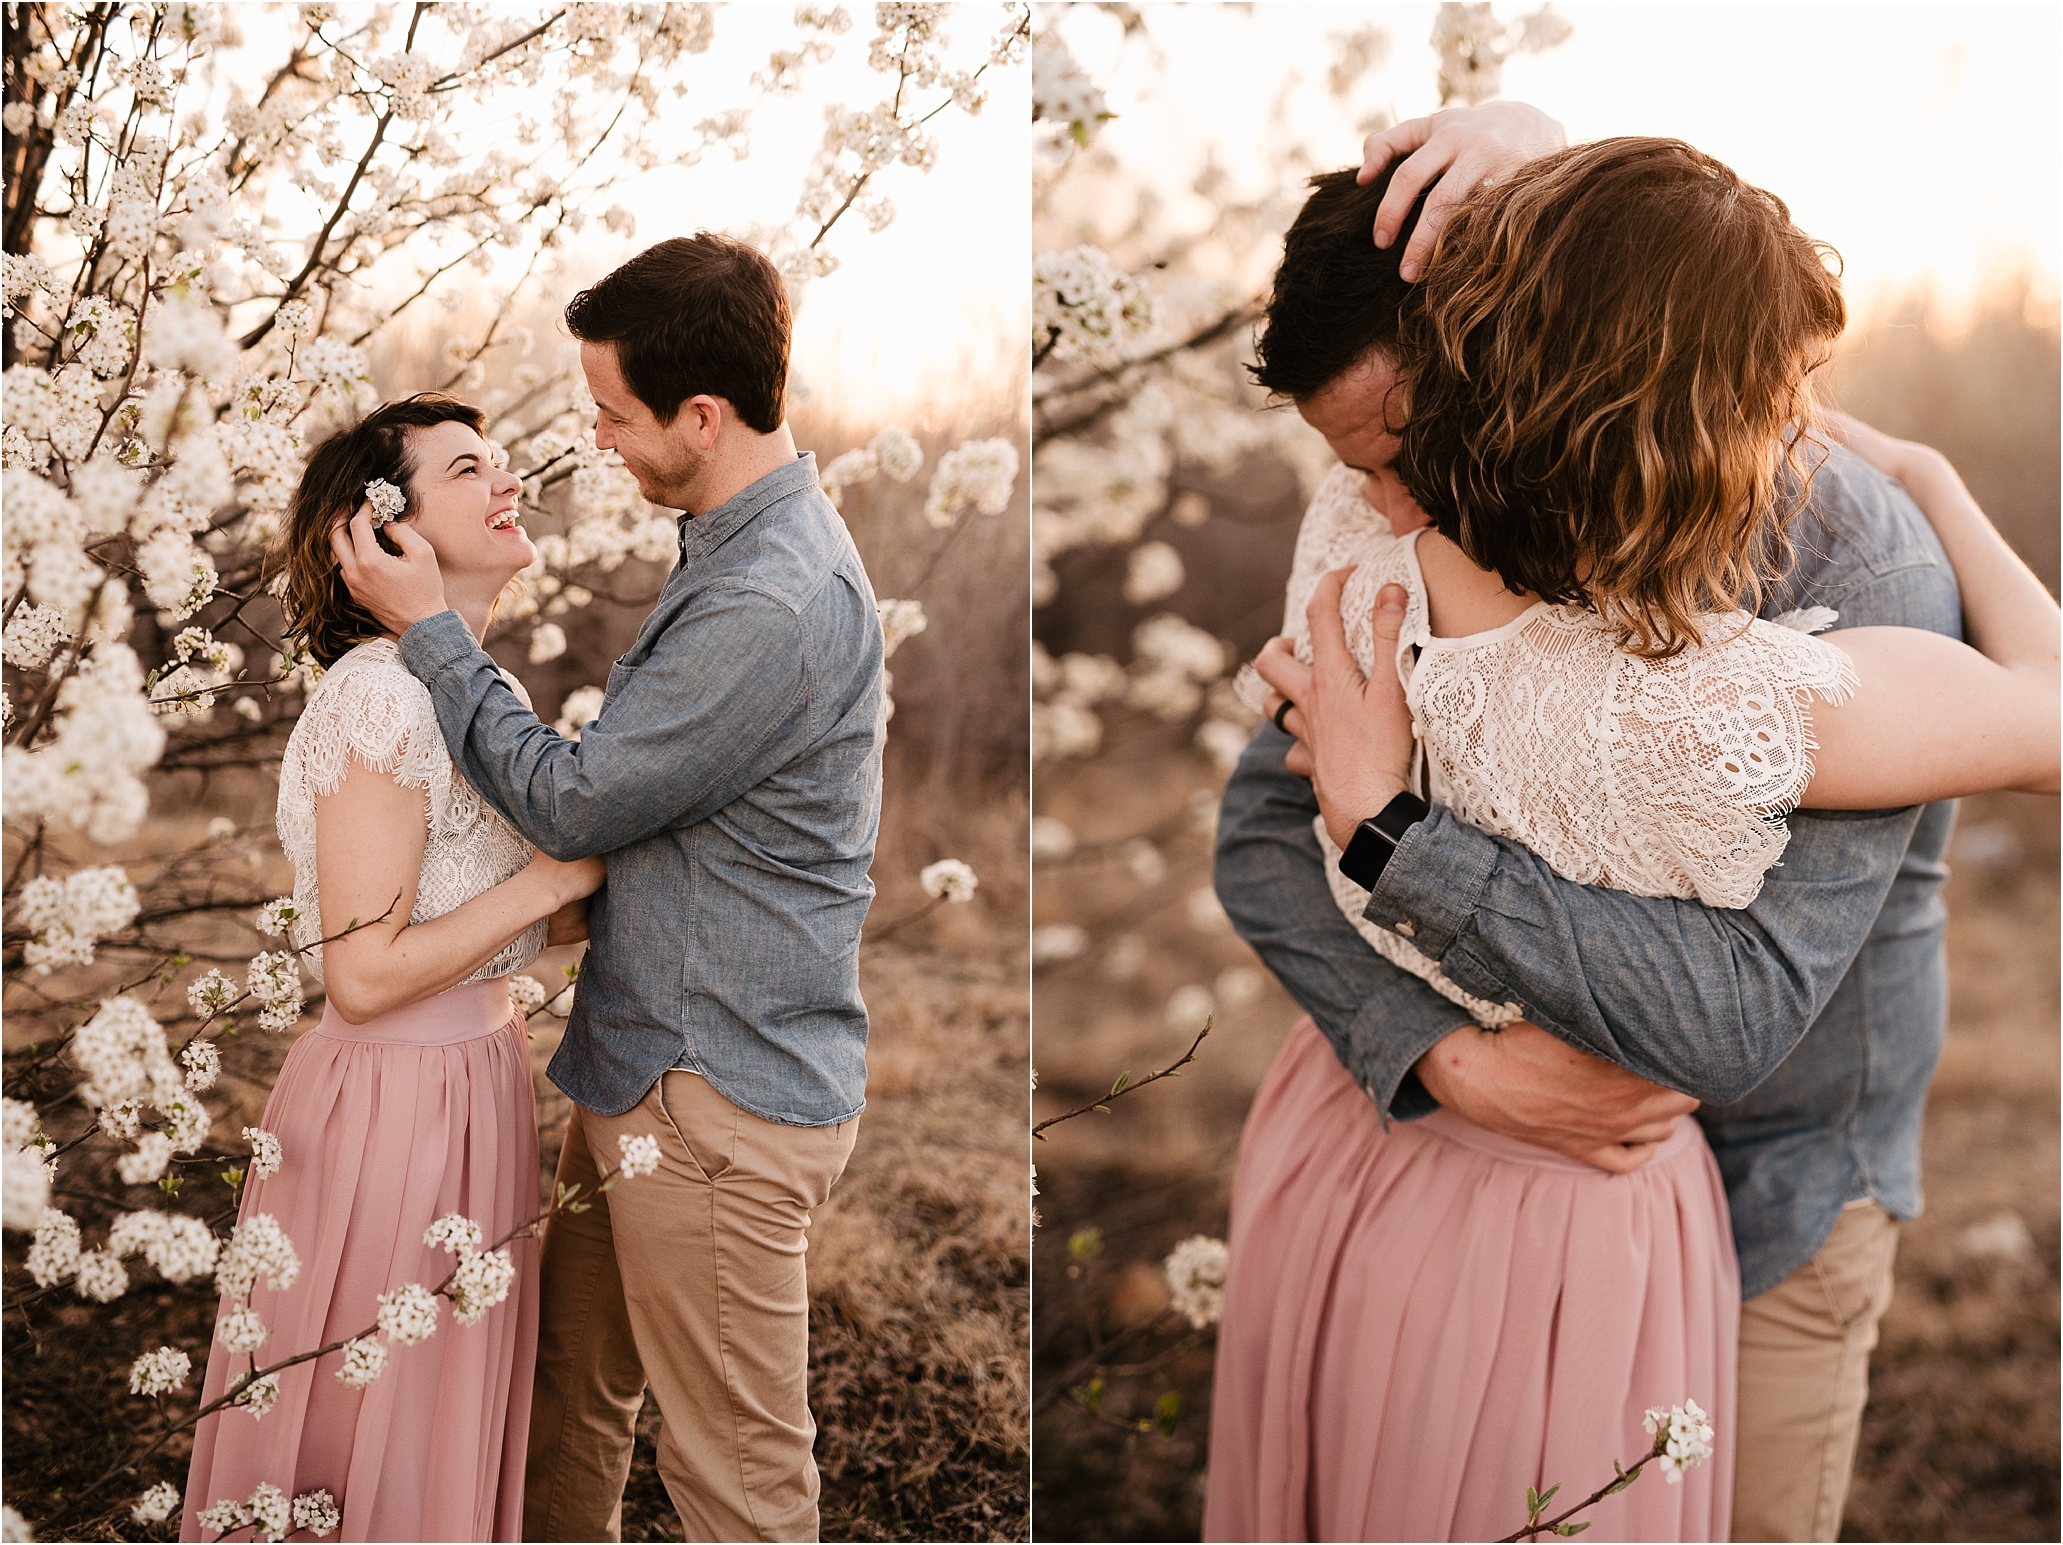 BradfordPearPhotoShoot_Kengagement photos session oklahoma wedding photographer outdoors spring edmond okc anniversary what to wear natural flowers natureelcyLeighPhotography